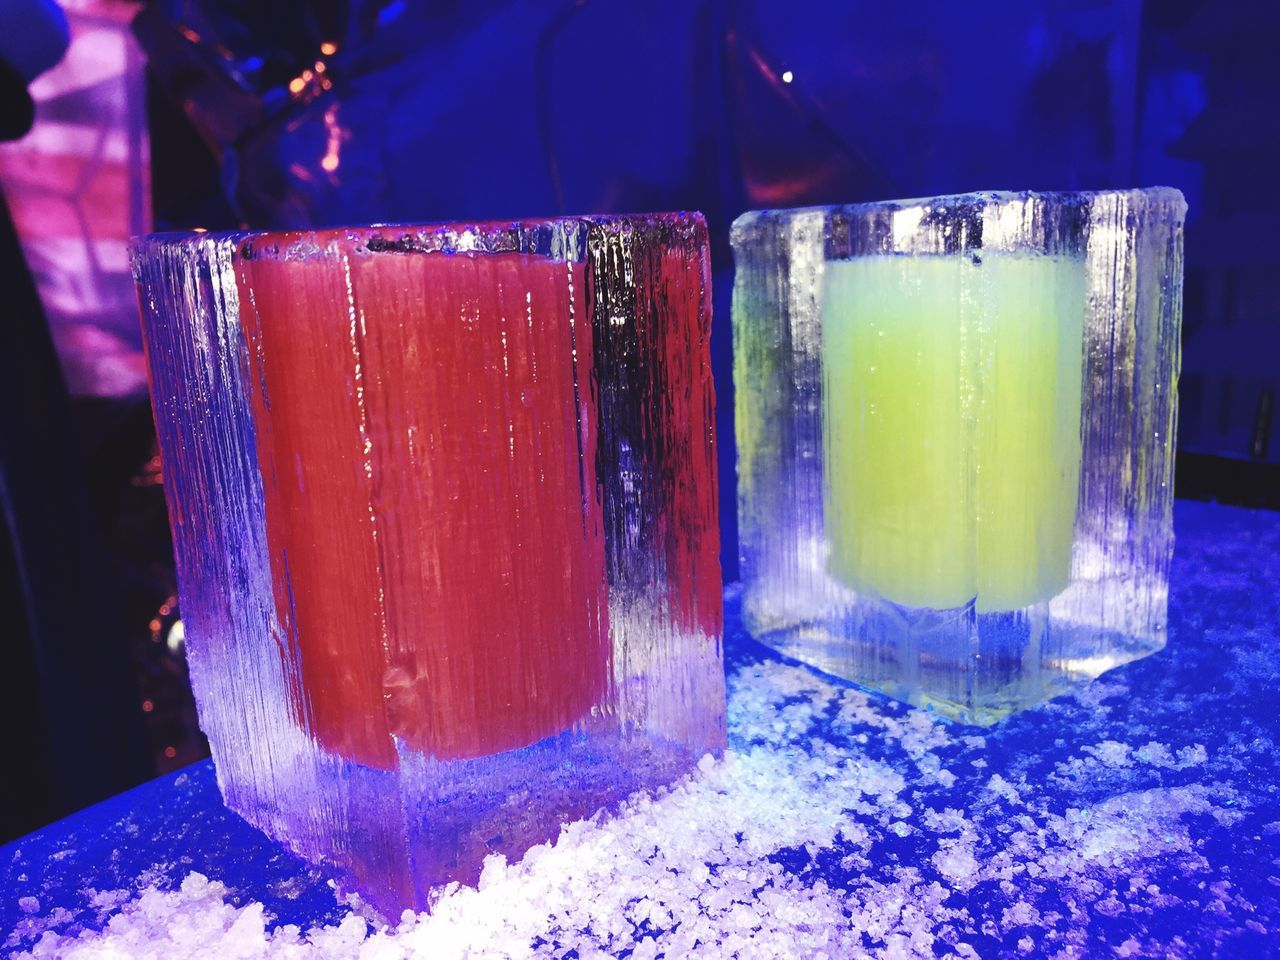 Ice drinks at the Ice bar in London Ice Vodka🍹 Vodka Time!! Icebar London Icehouse Drinks Ice Drinks Iced Cold Freezing Vodka Time  Vodka Cocktail Cocktails United Kingdom Capital Happy Happy Drinks Drinks Time Alchol Freezing Cold Ice